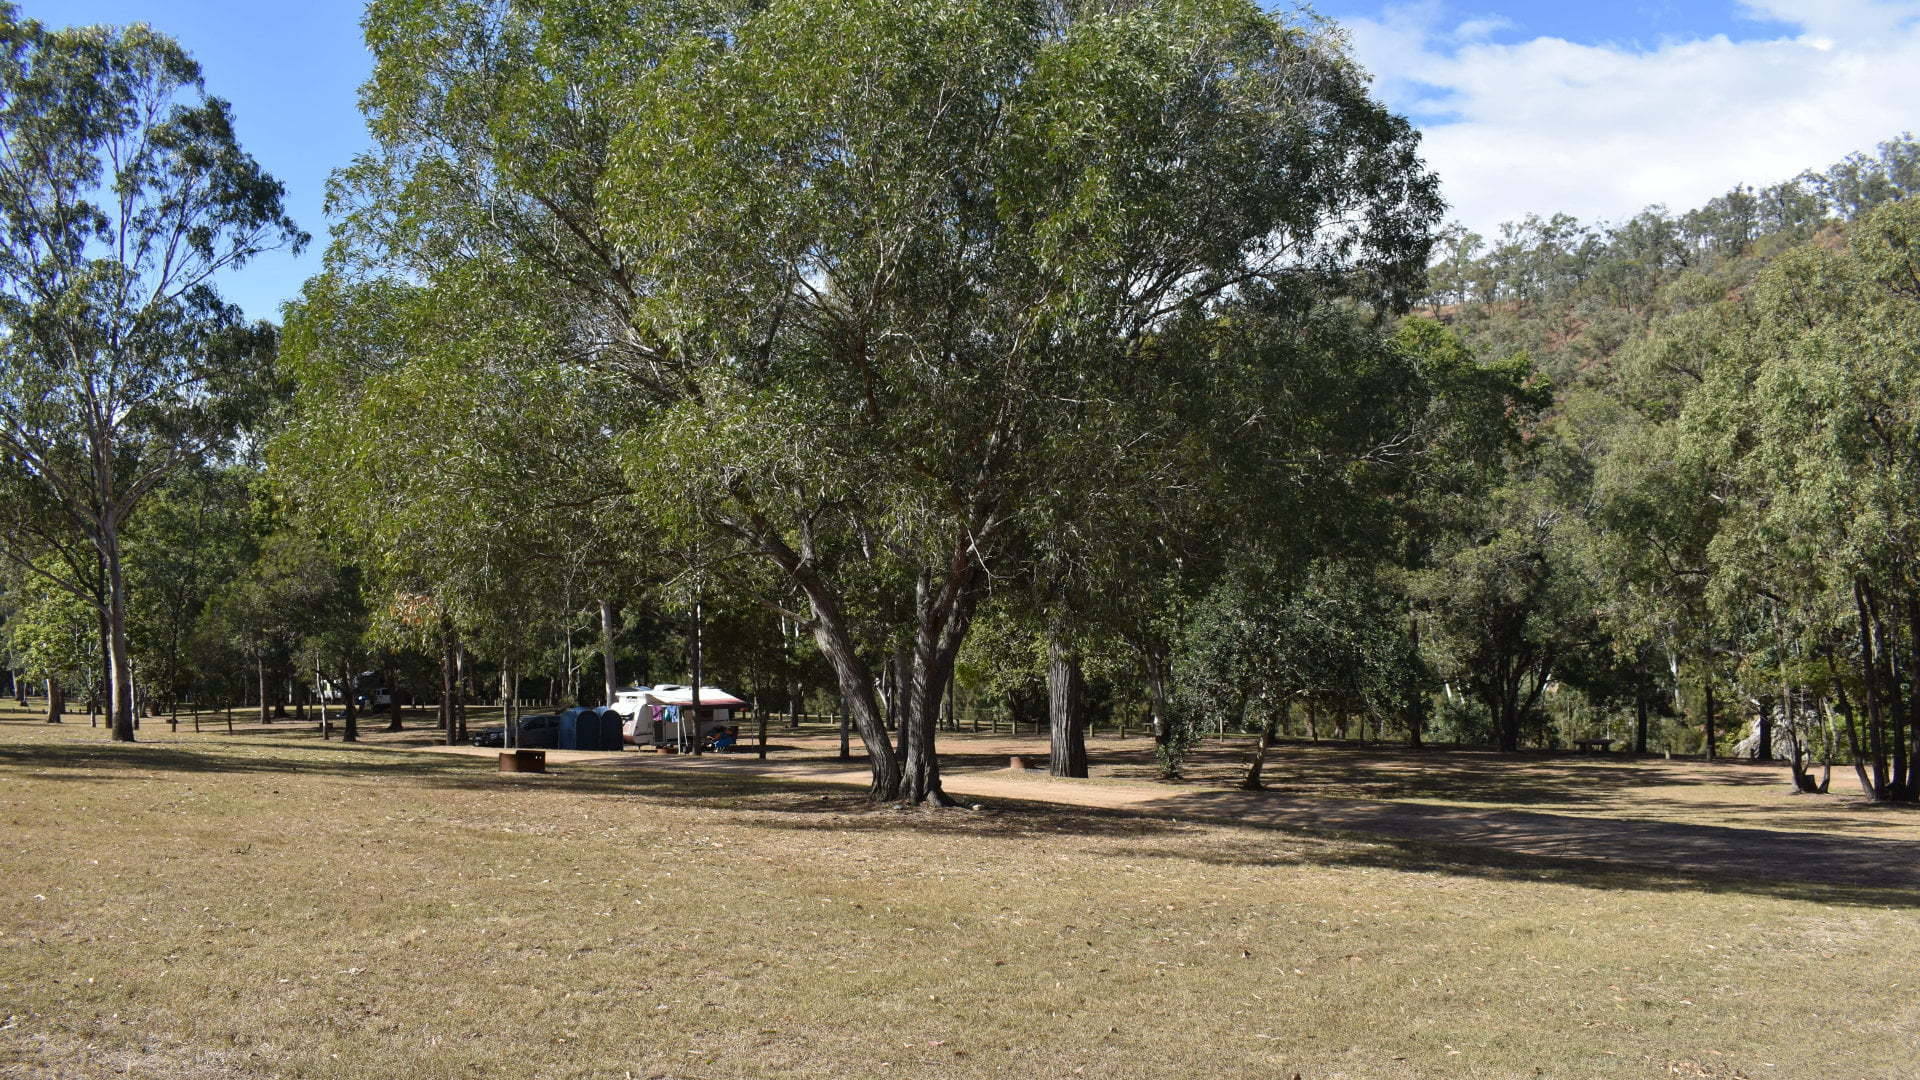 Emu Creek campground at Benarkin State Forest, located on the D'Aguilar Hwy west of Kilcoy before reaching Blackbutt. Camping in Benarkin State Forest at Clancy's or Emu Creek, and a day use area at Emu Creek